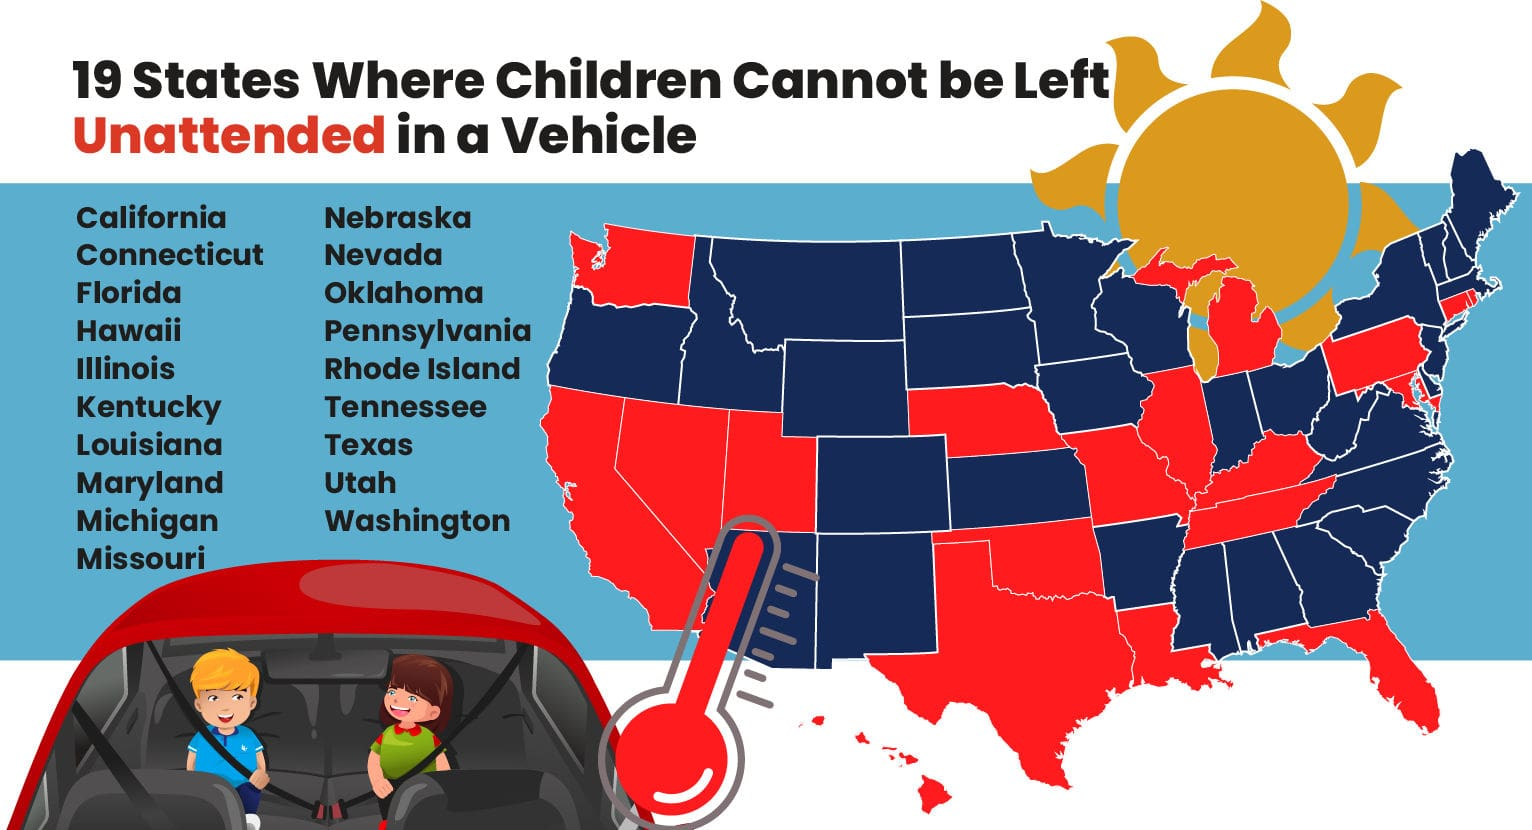 19 States Where Children Cannot be Left in Vehicles